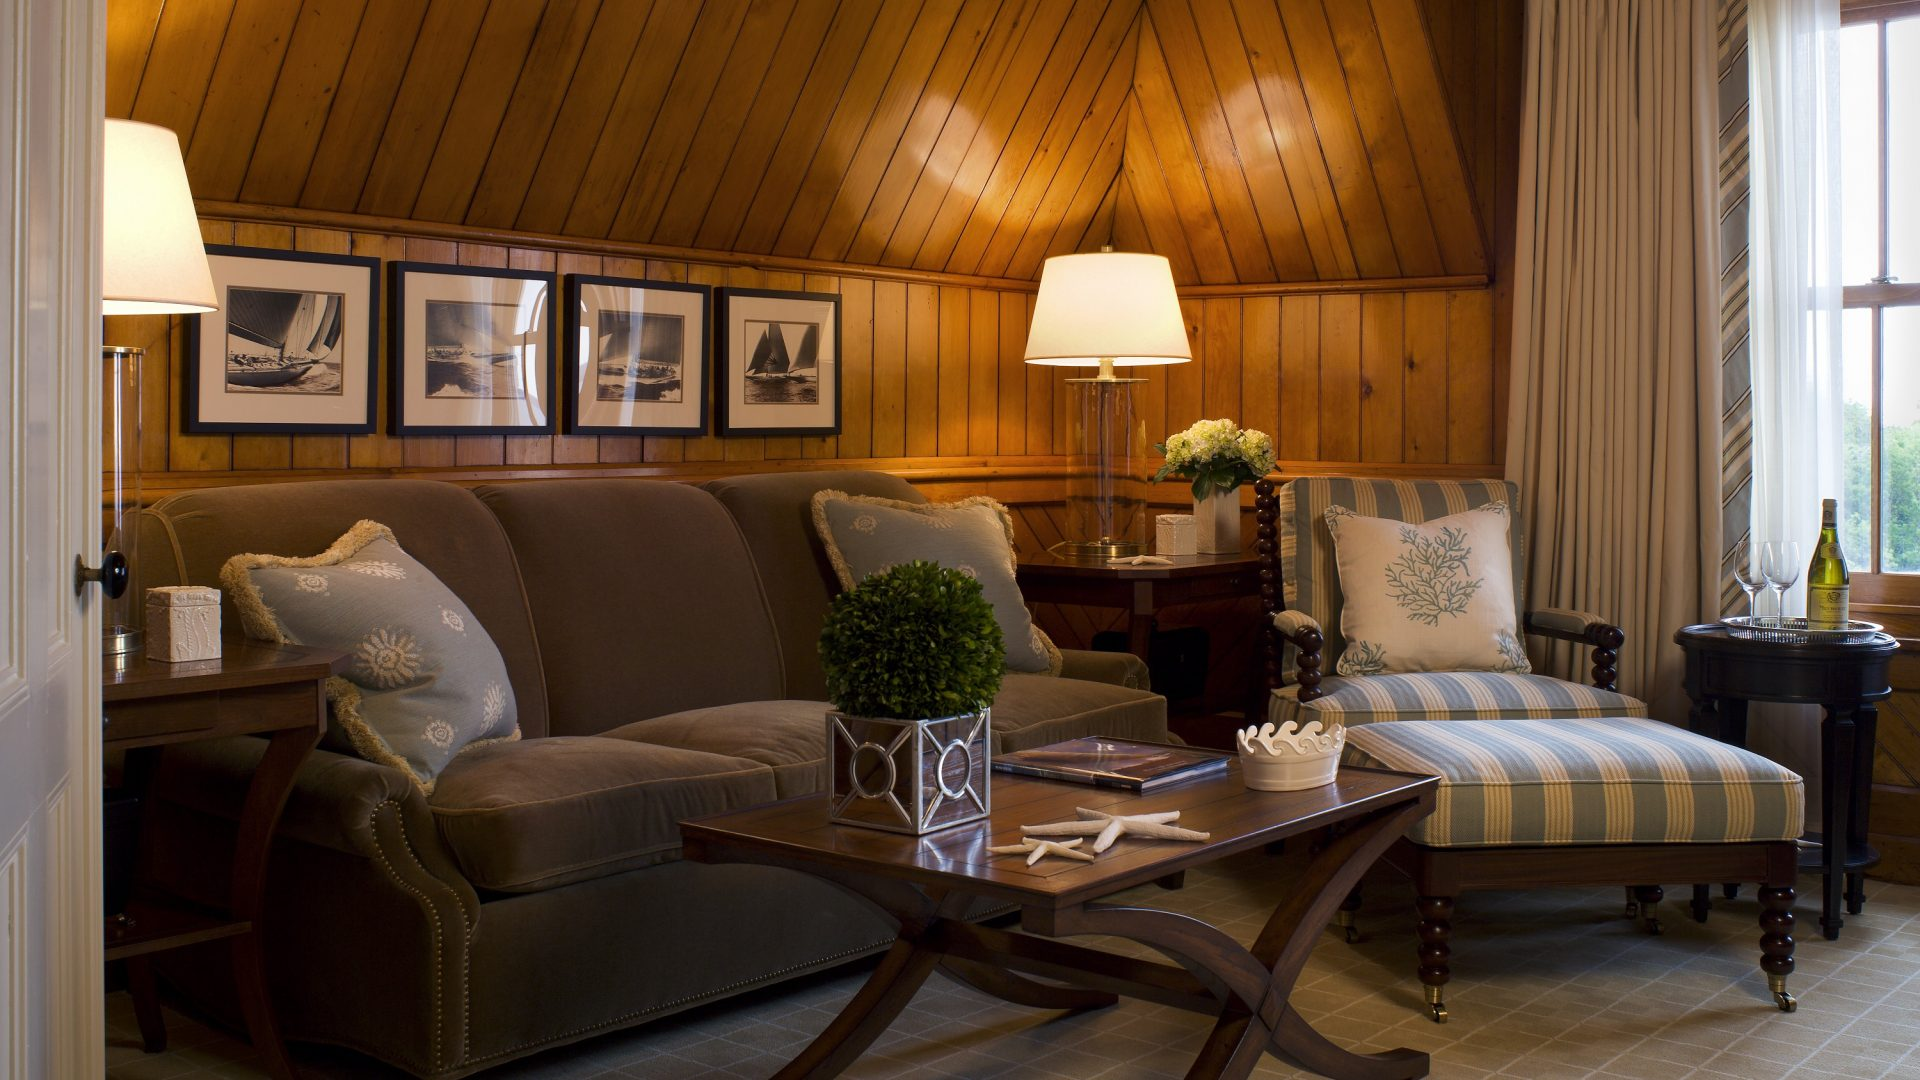 The Lighthouse Suite Living Room At Castle Hill Inn And Resort